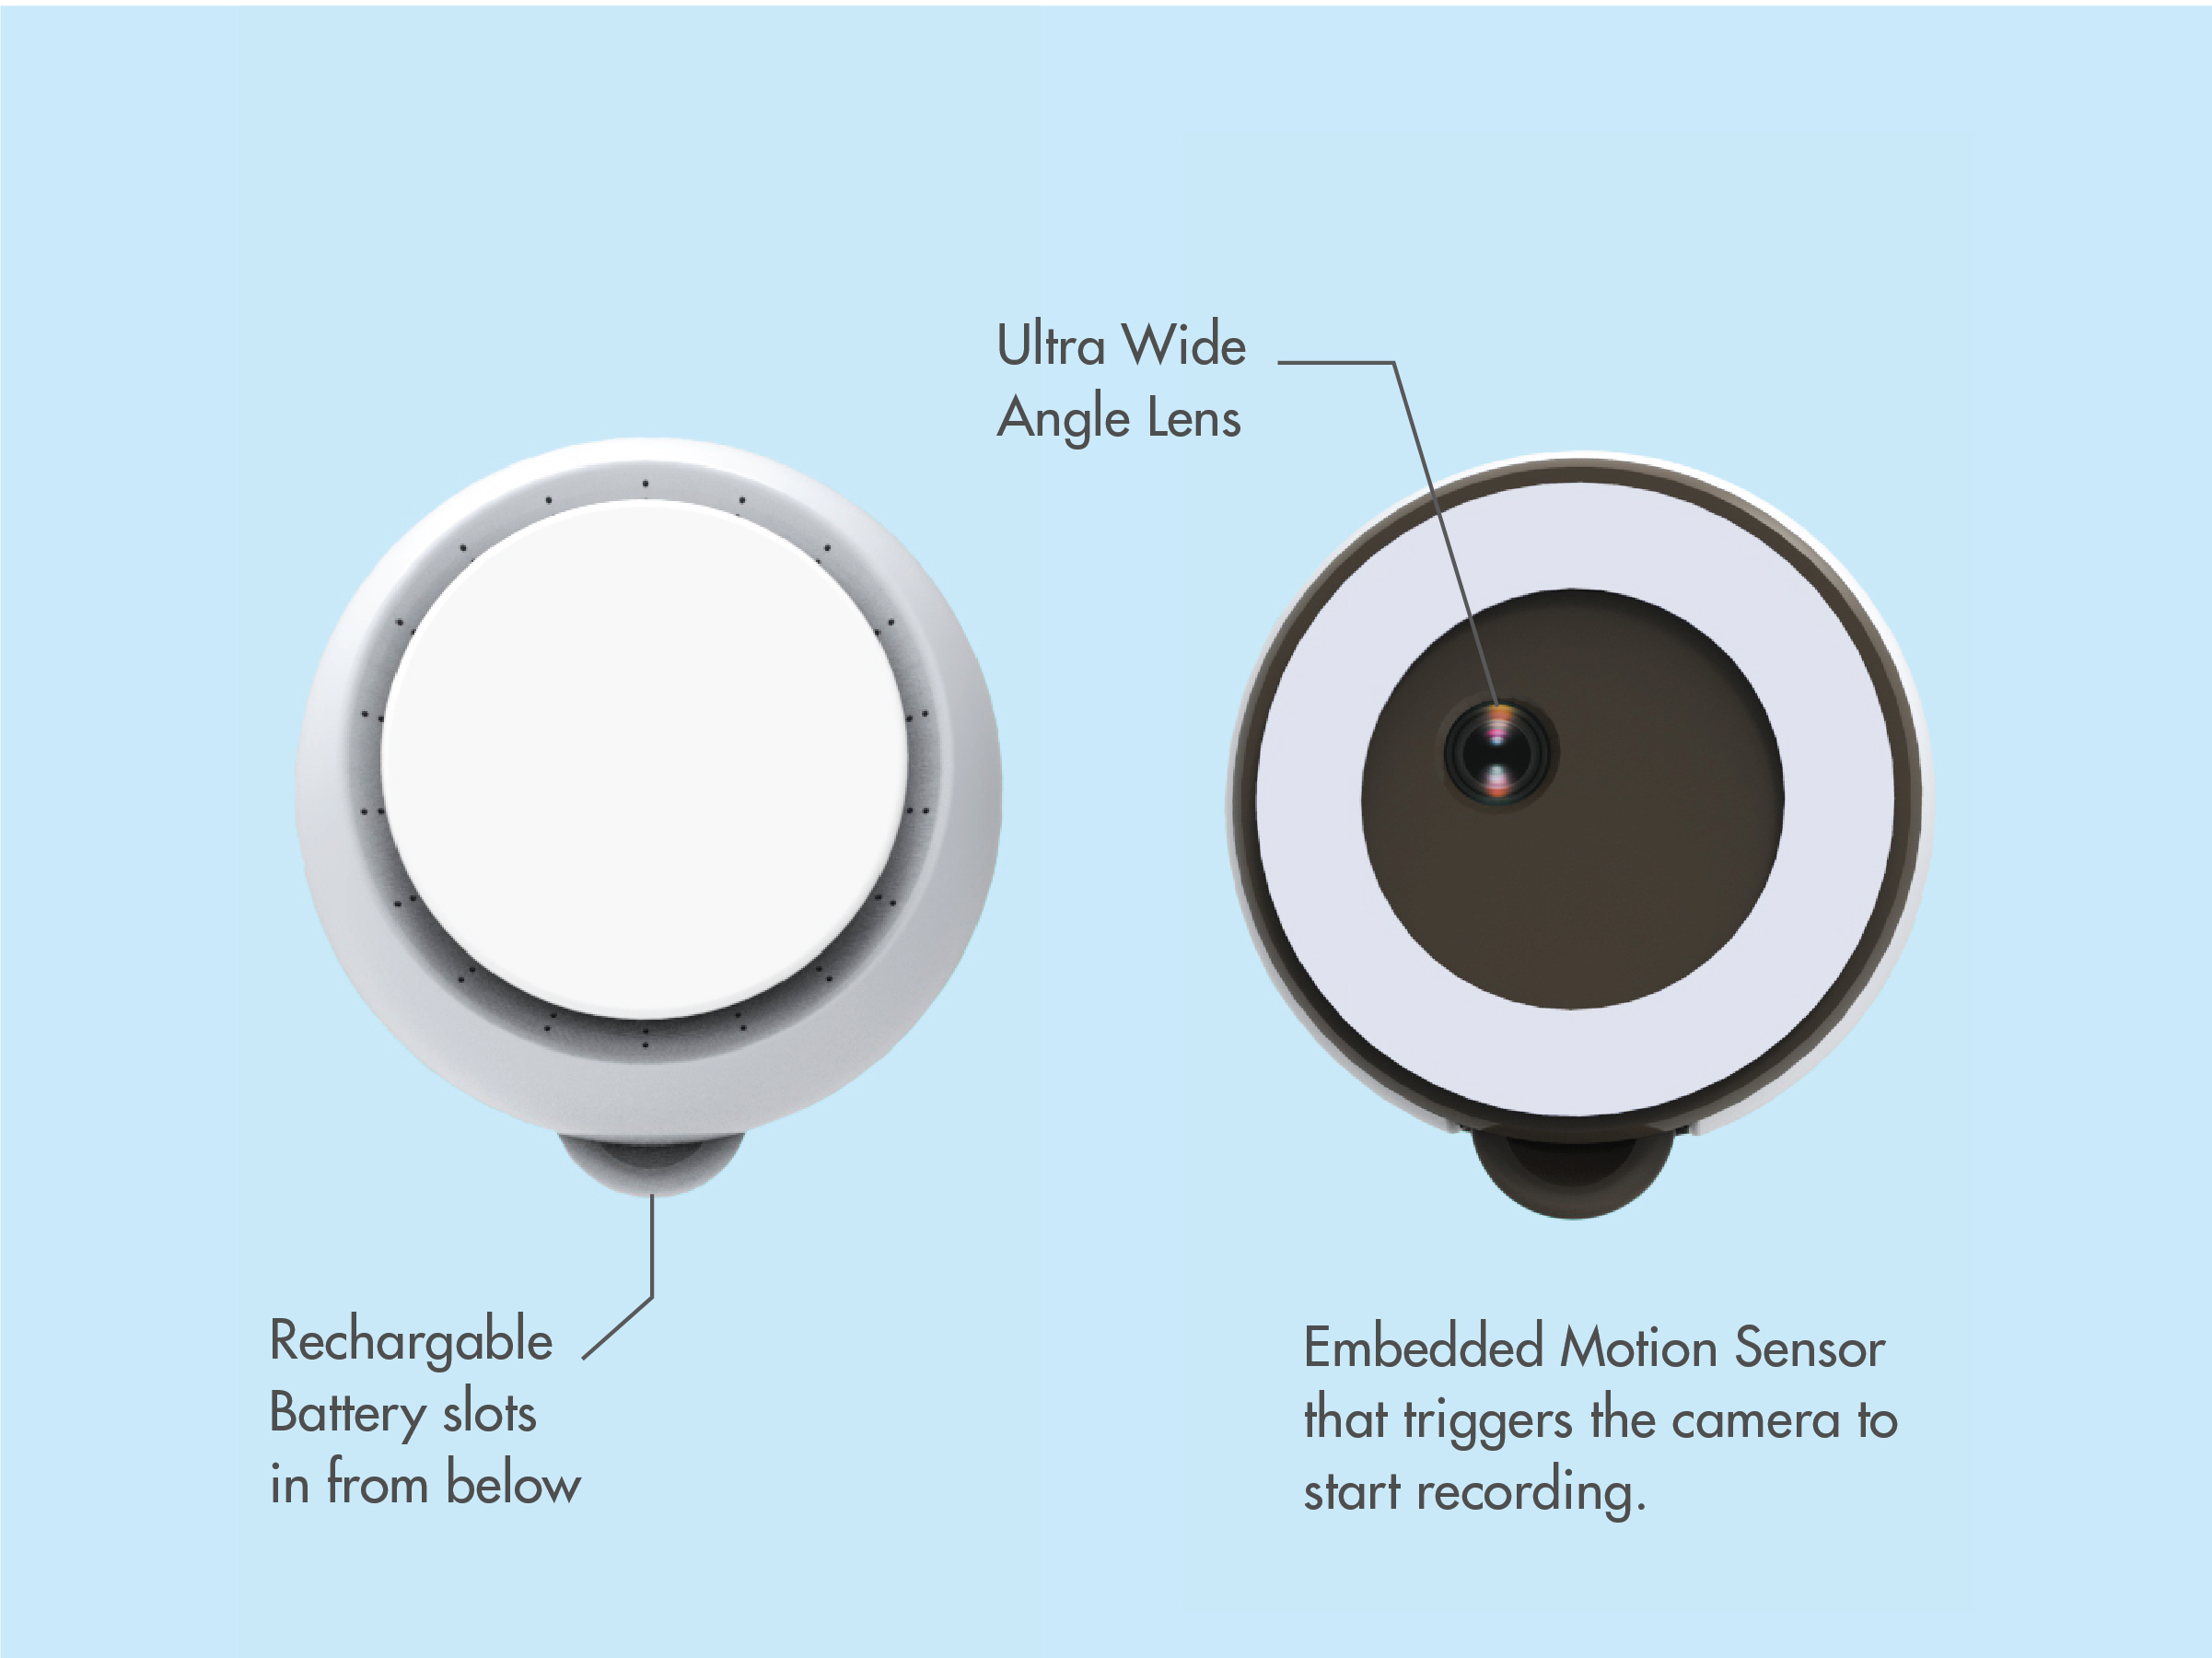 Window camera is designed to be placed right onto the window glass to look outwards for any suspicious activity with a wide angle view. -